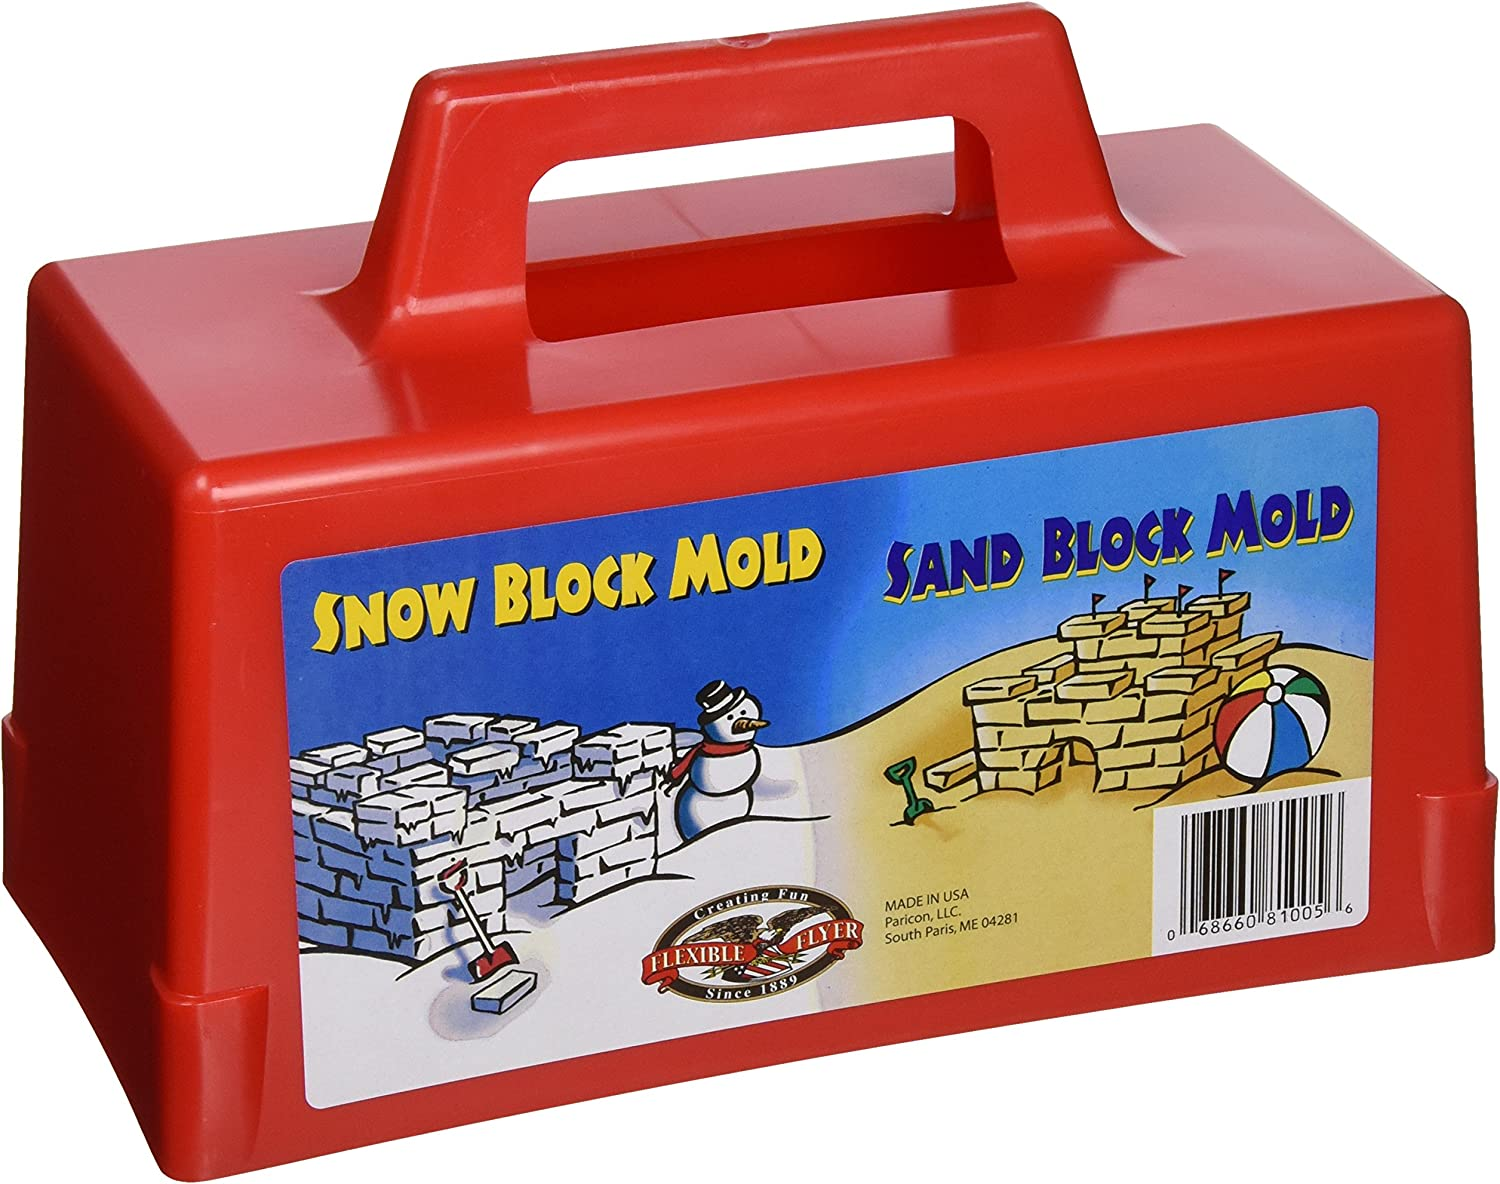 Flexible Flyer Snow Fort Building Block, Sand Castle Mold, Beach Toy Brick Form, 1 Mold (605): Sports & Outdoors